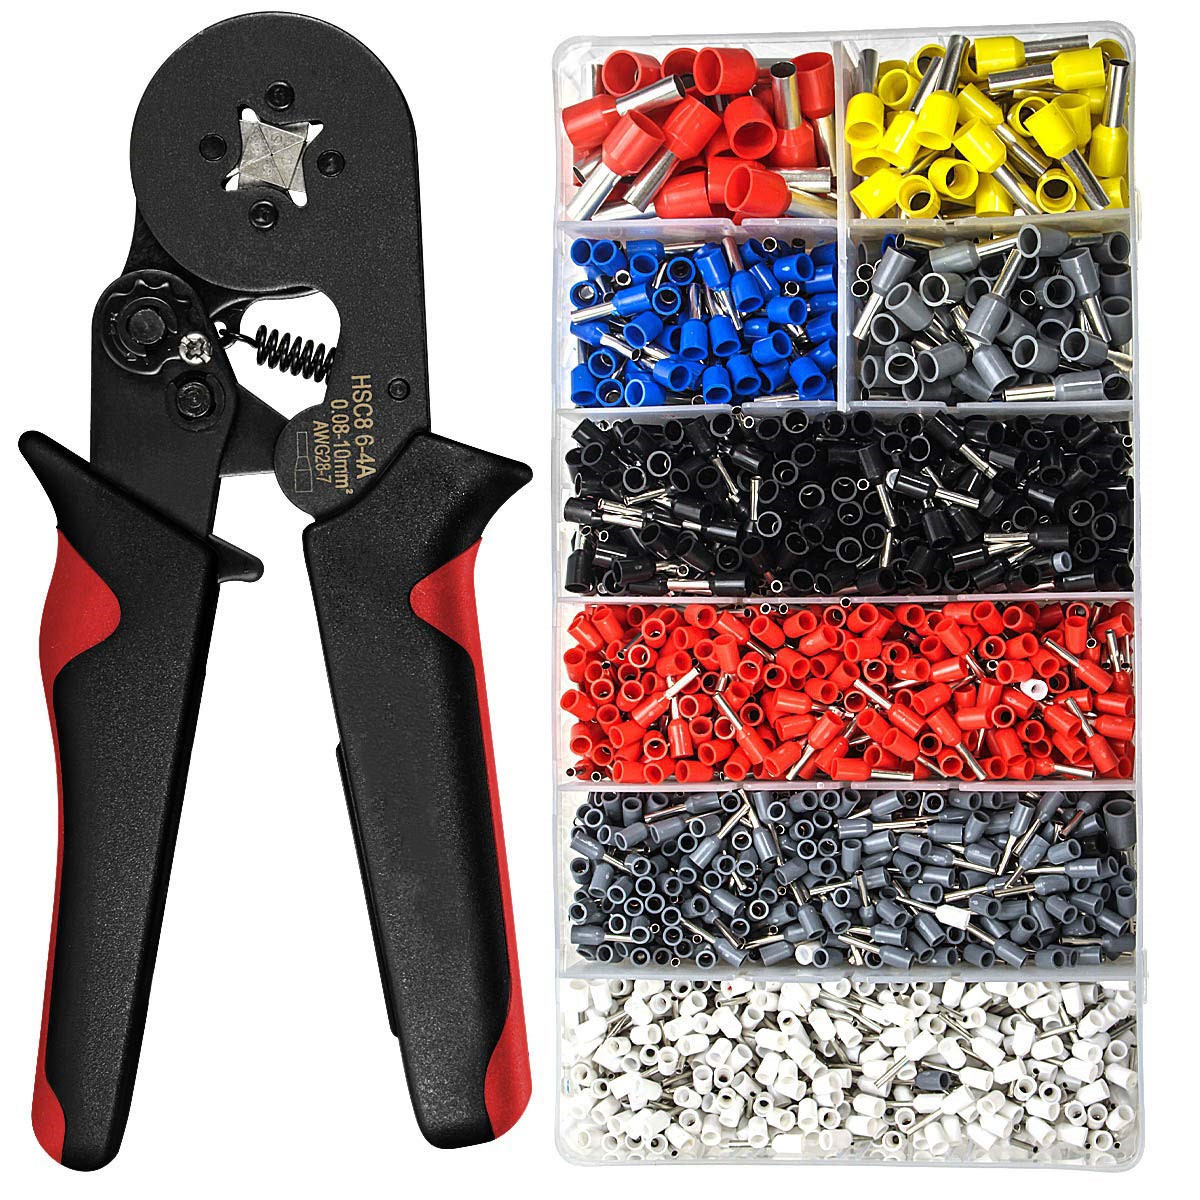 HSC8 6-4 0.25-10mm2 23-10AWG crimping pliers 1200pcs terminals for tube type needle type terminal crimp self-adjusting tool